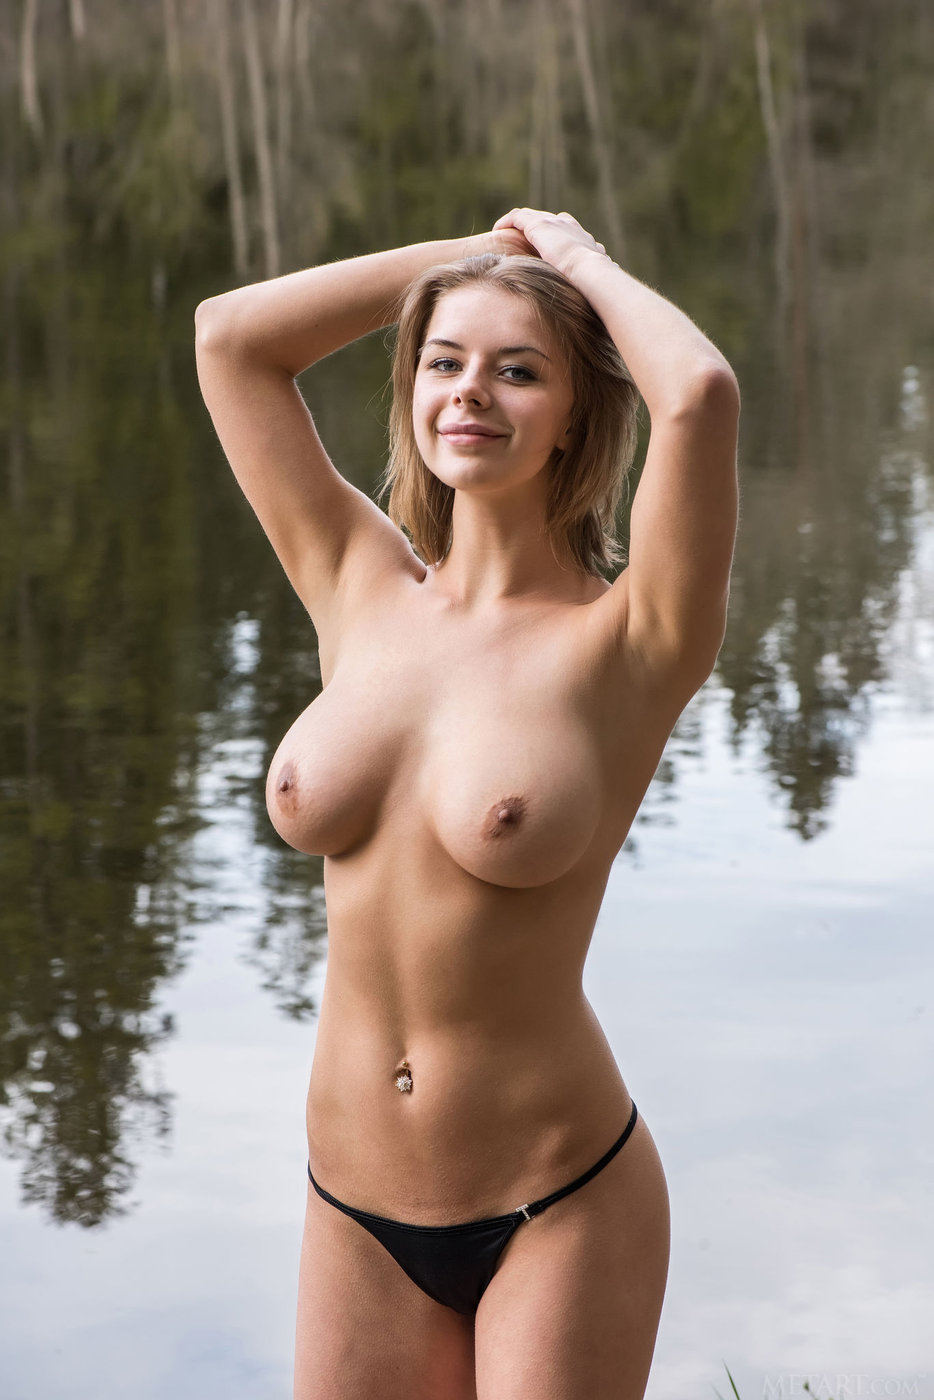 Shorthaired and naturally busty brunette posing in the